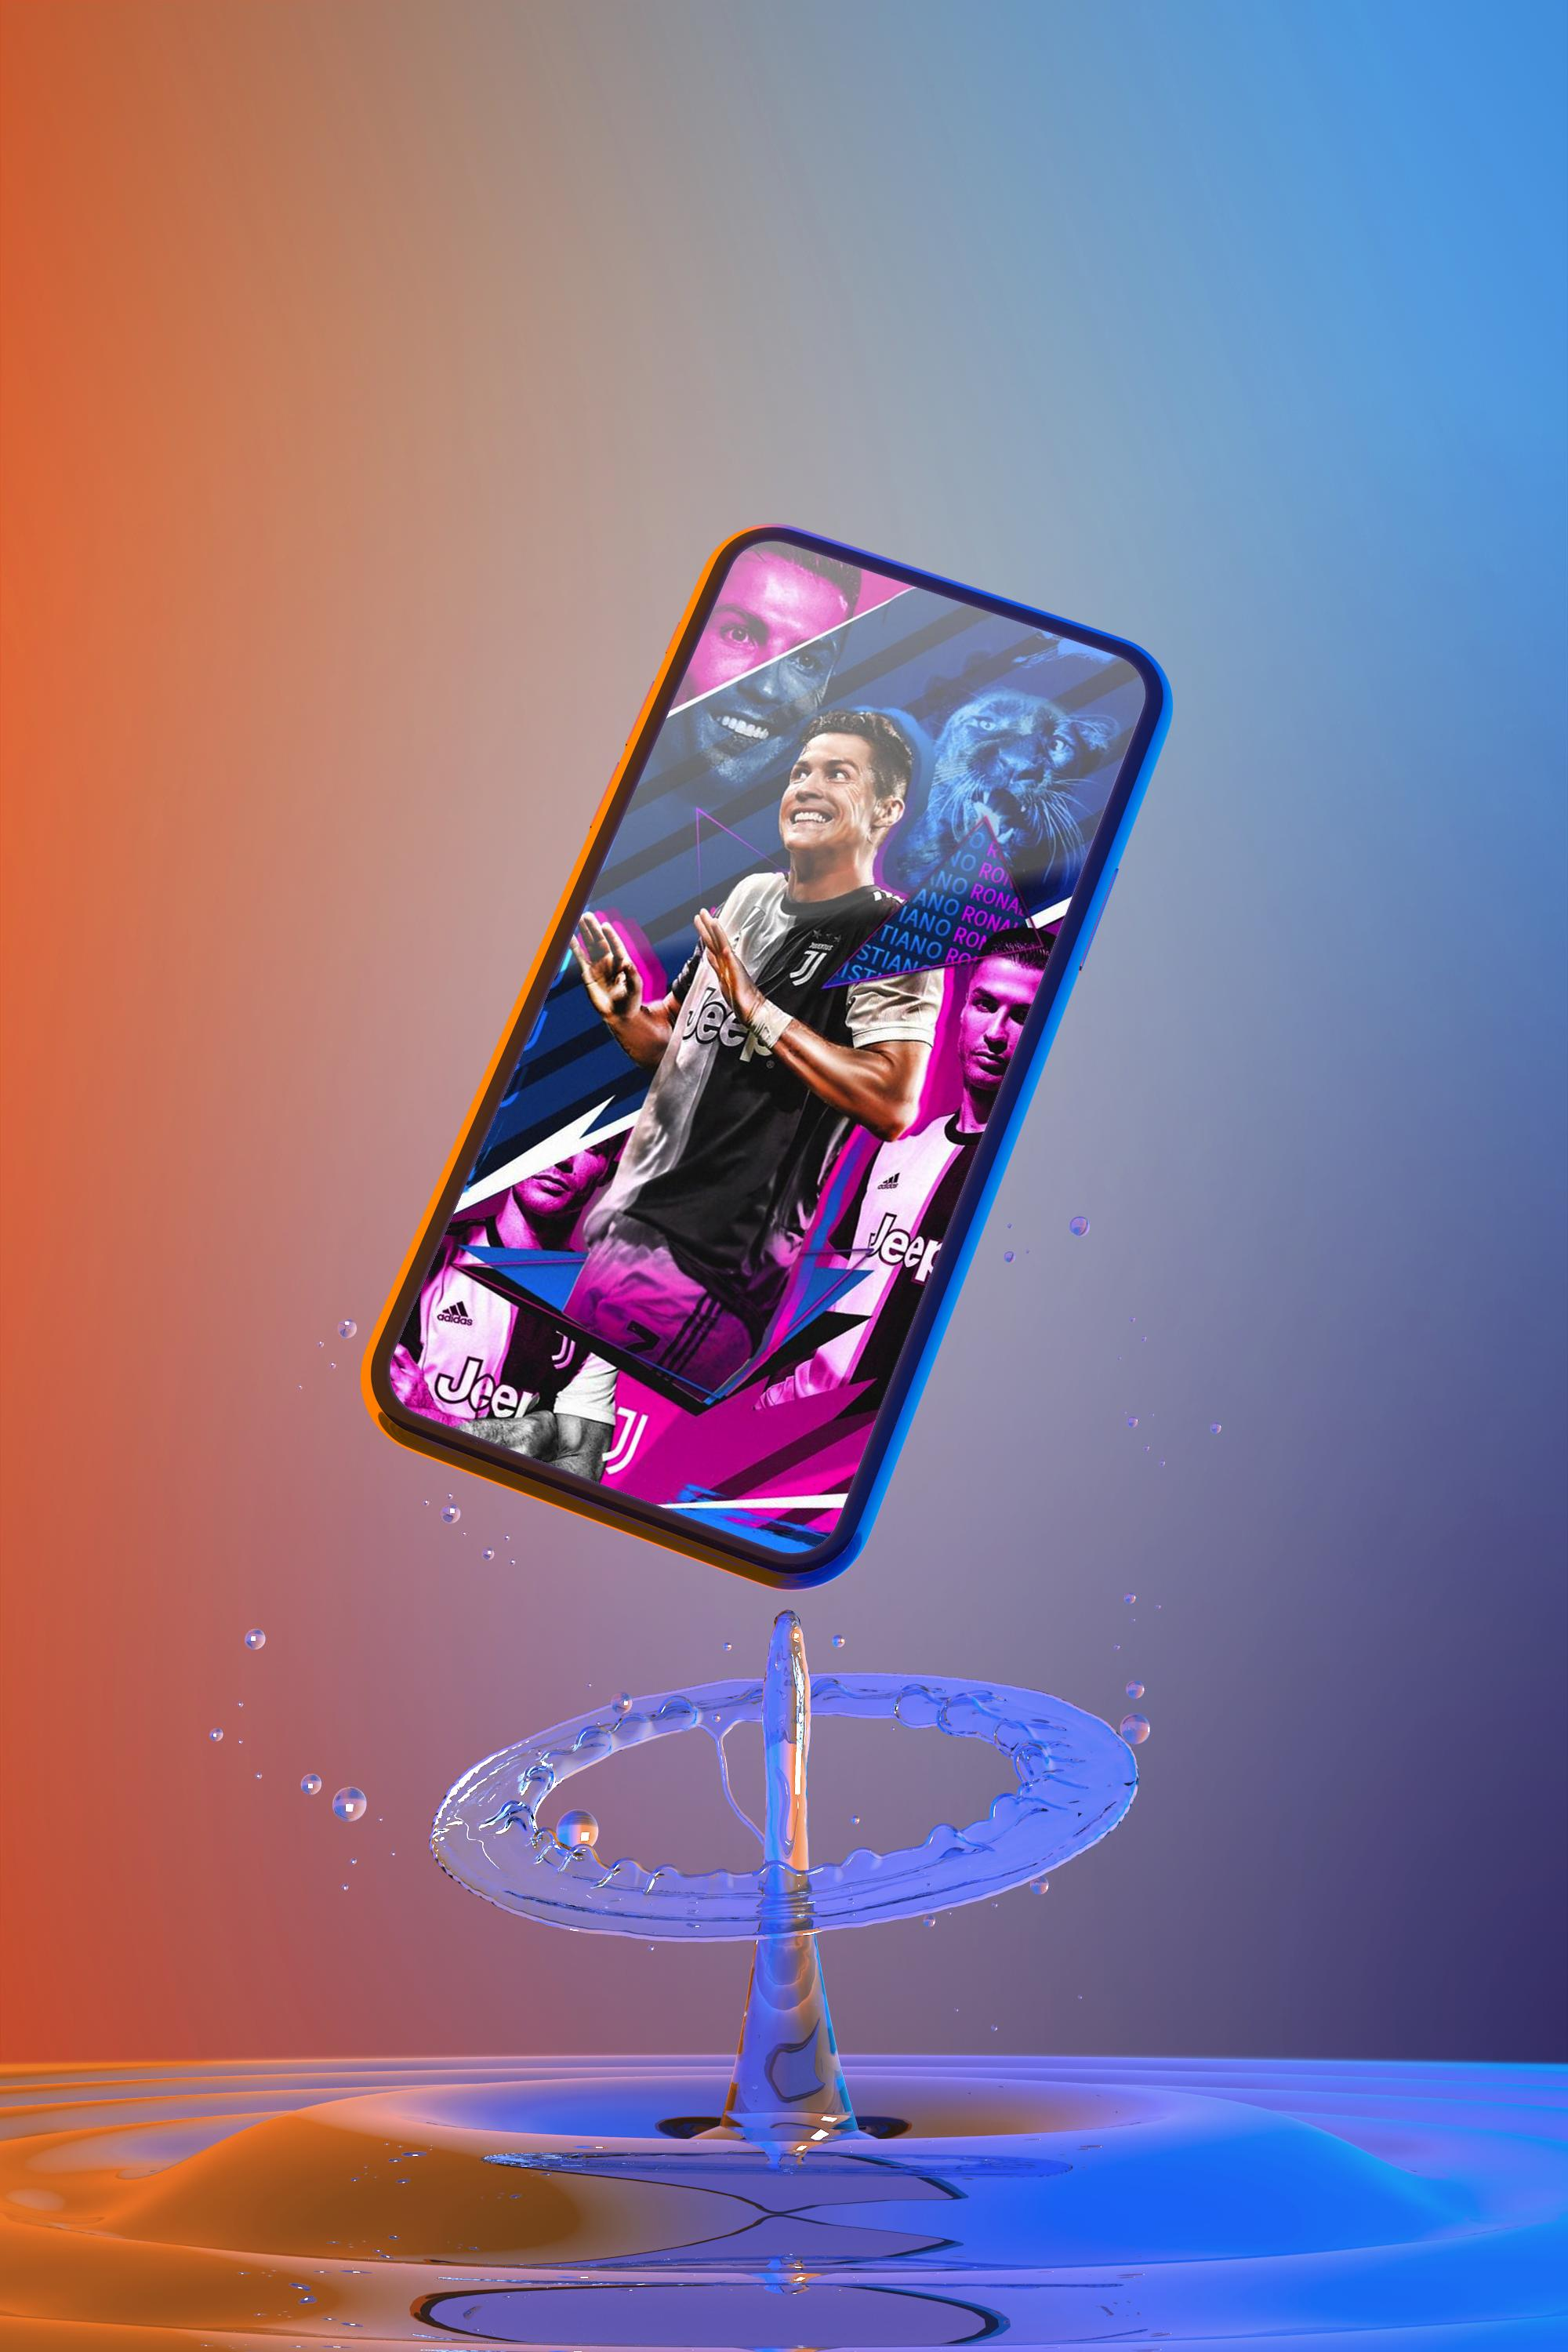 Ronaldo Wallpaper 2020 for Android   APK Download 2000x3000